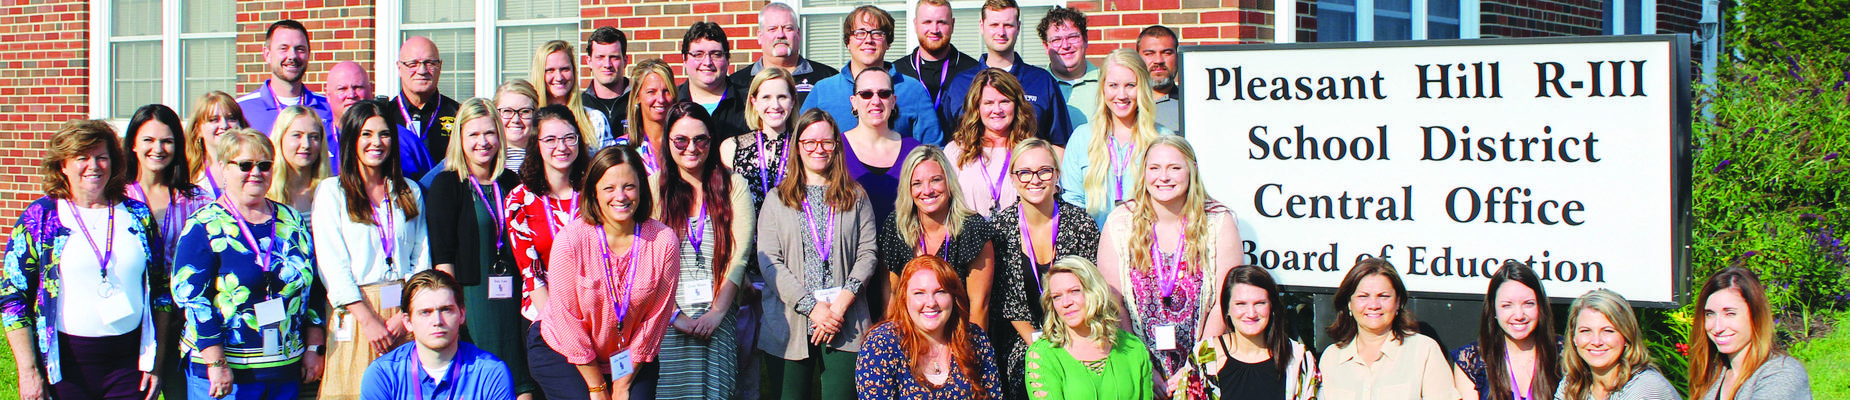 New staff join PH School District this fall